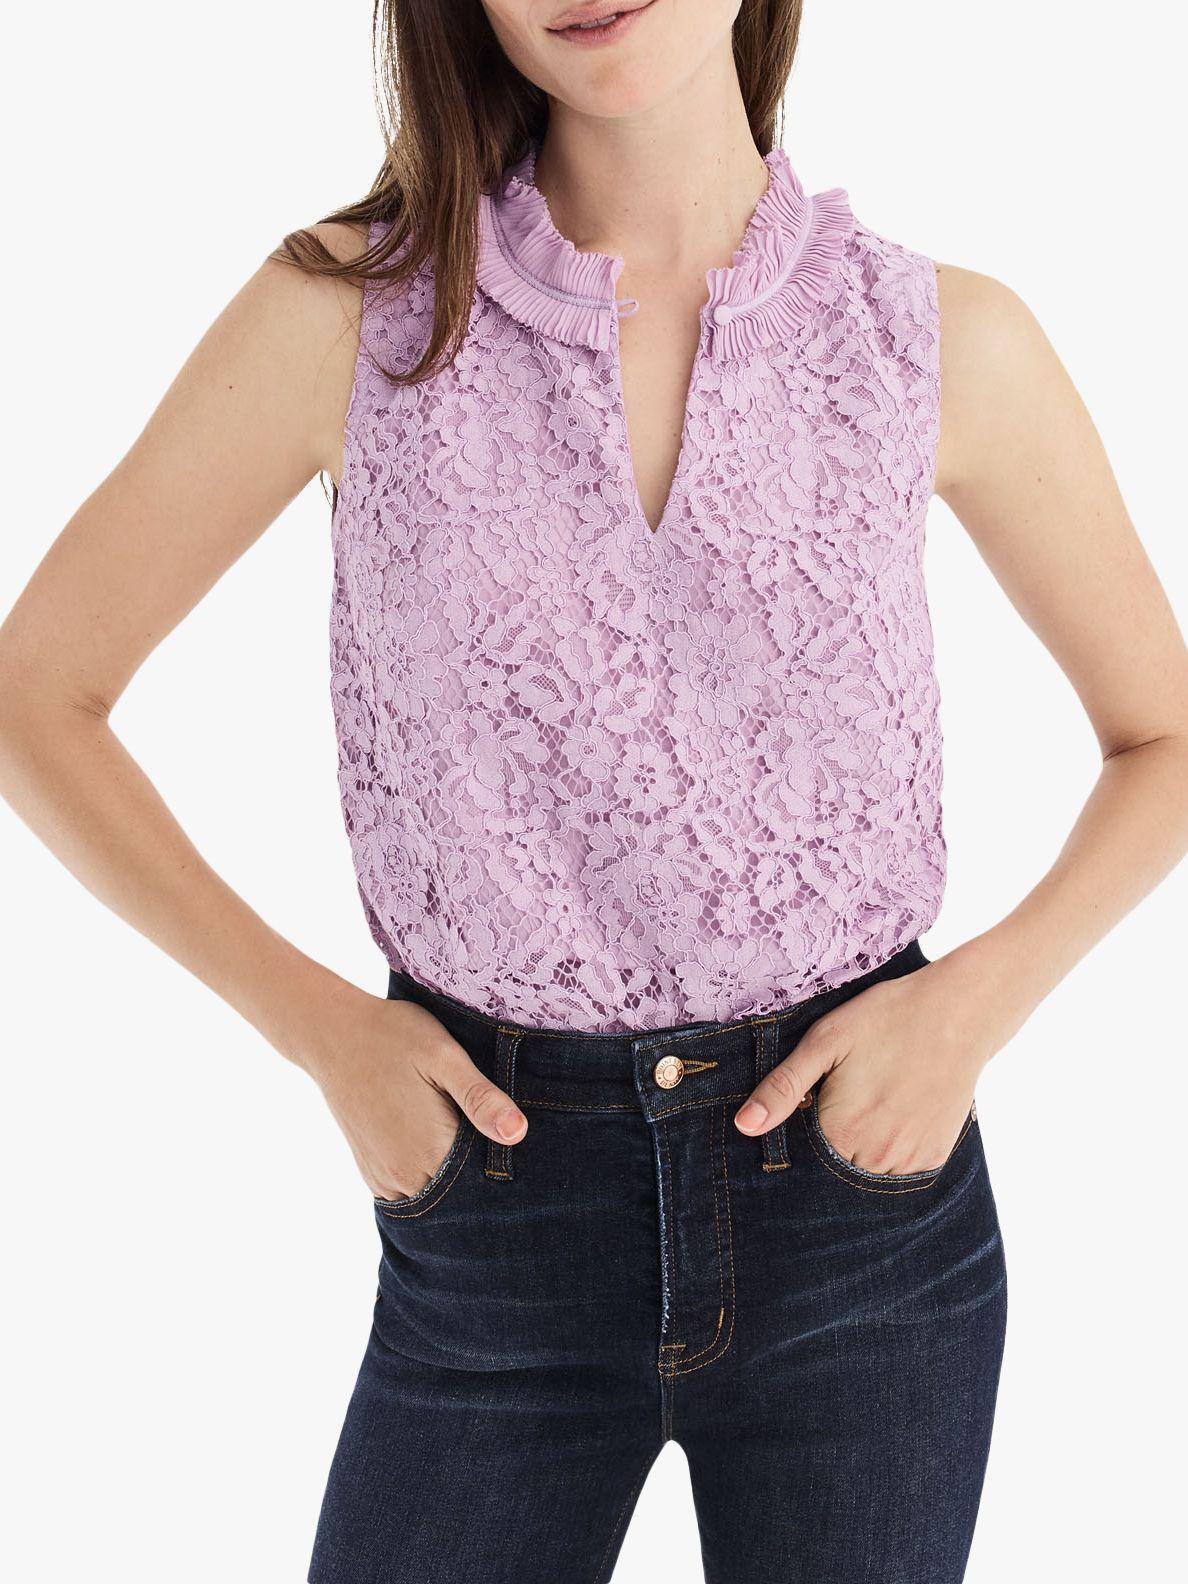 b6fcacaf985421 J.Crew Melody Unicorn Lace Top in Purple - Lyst